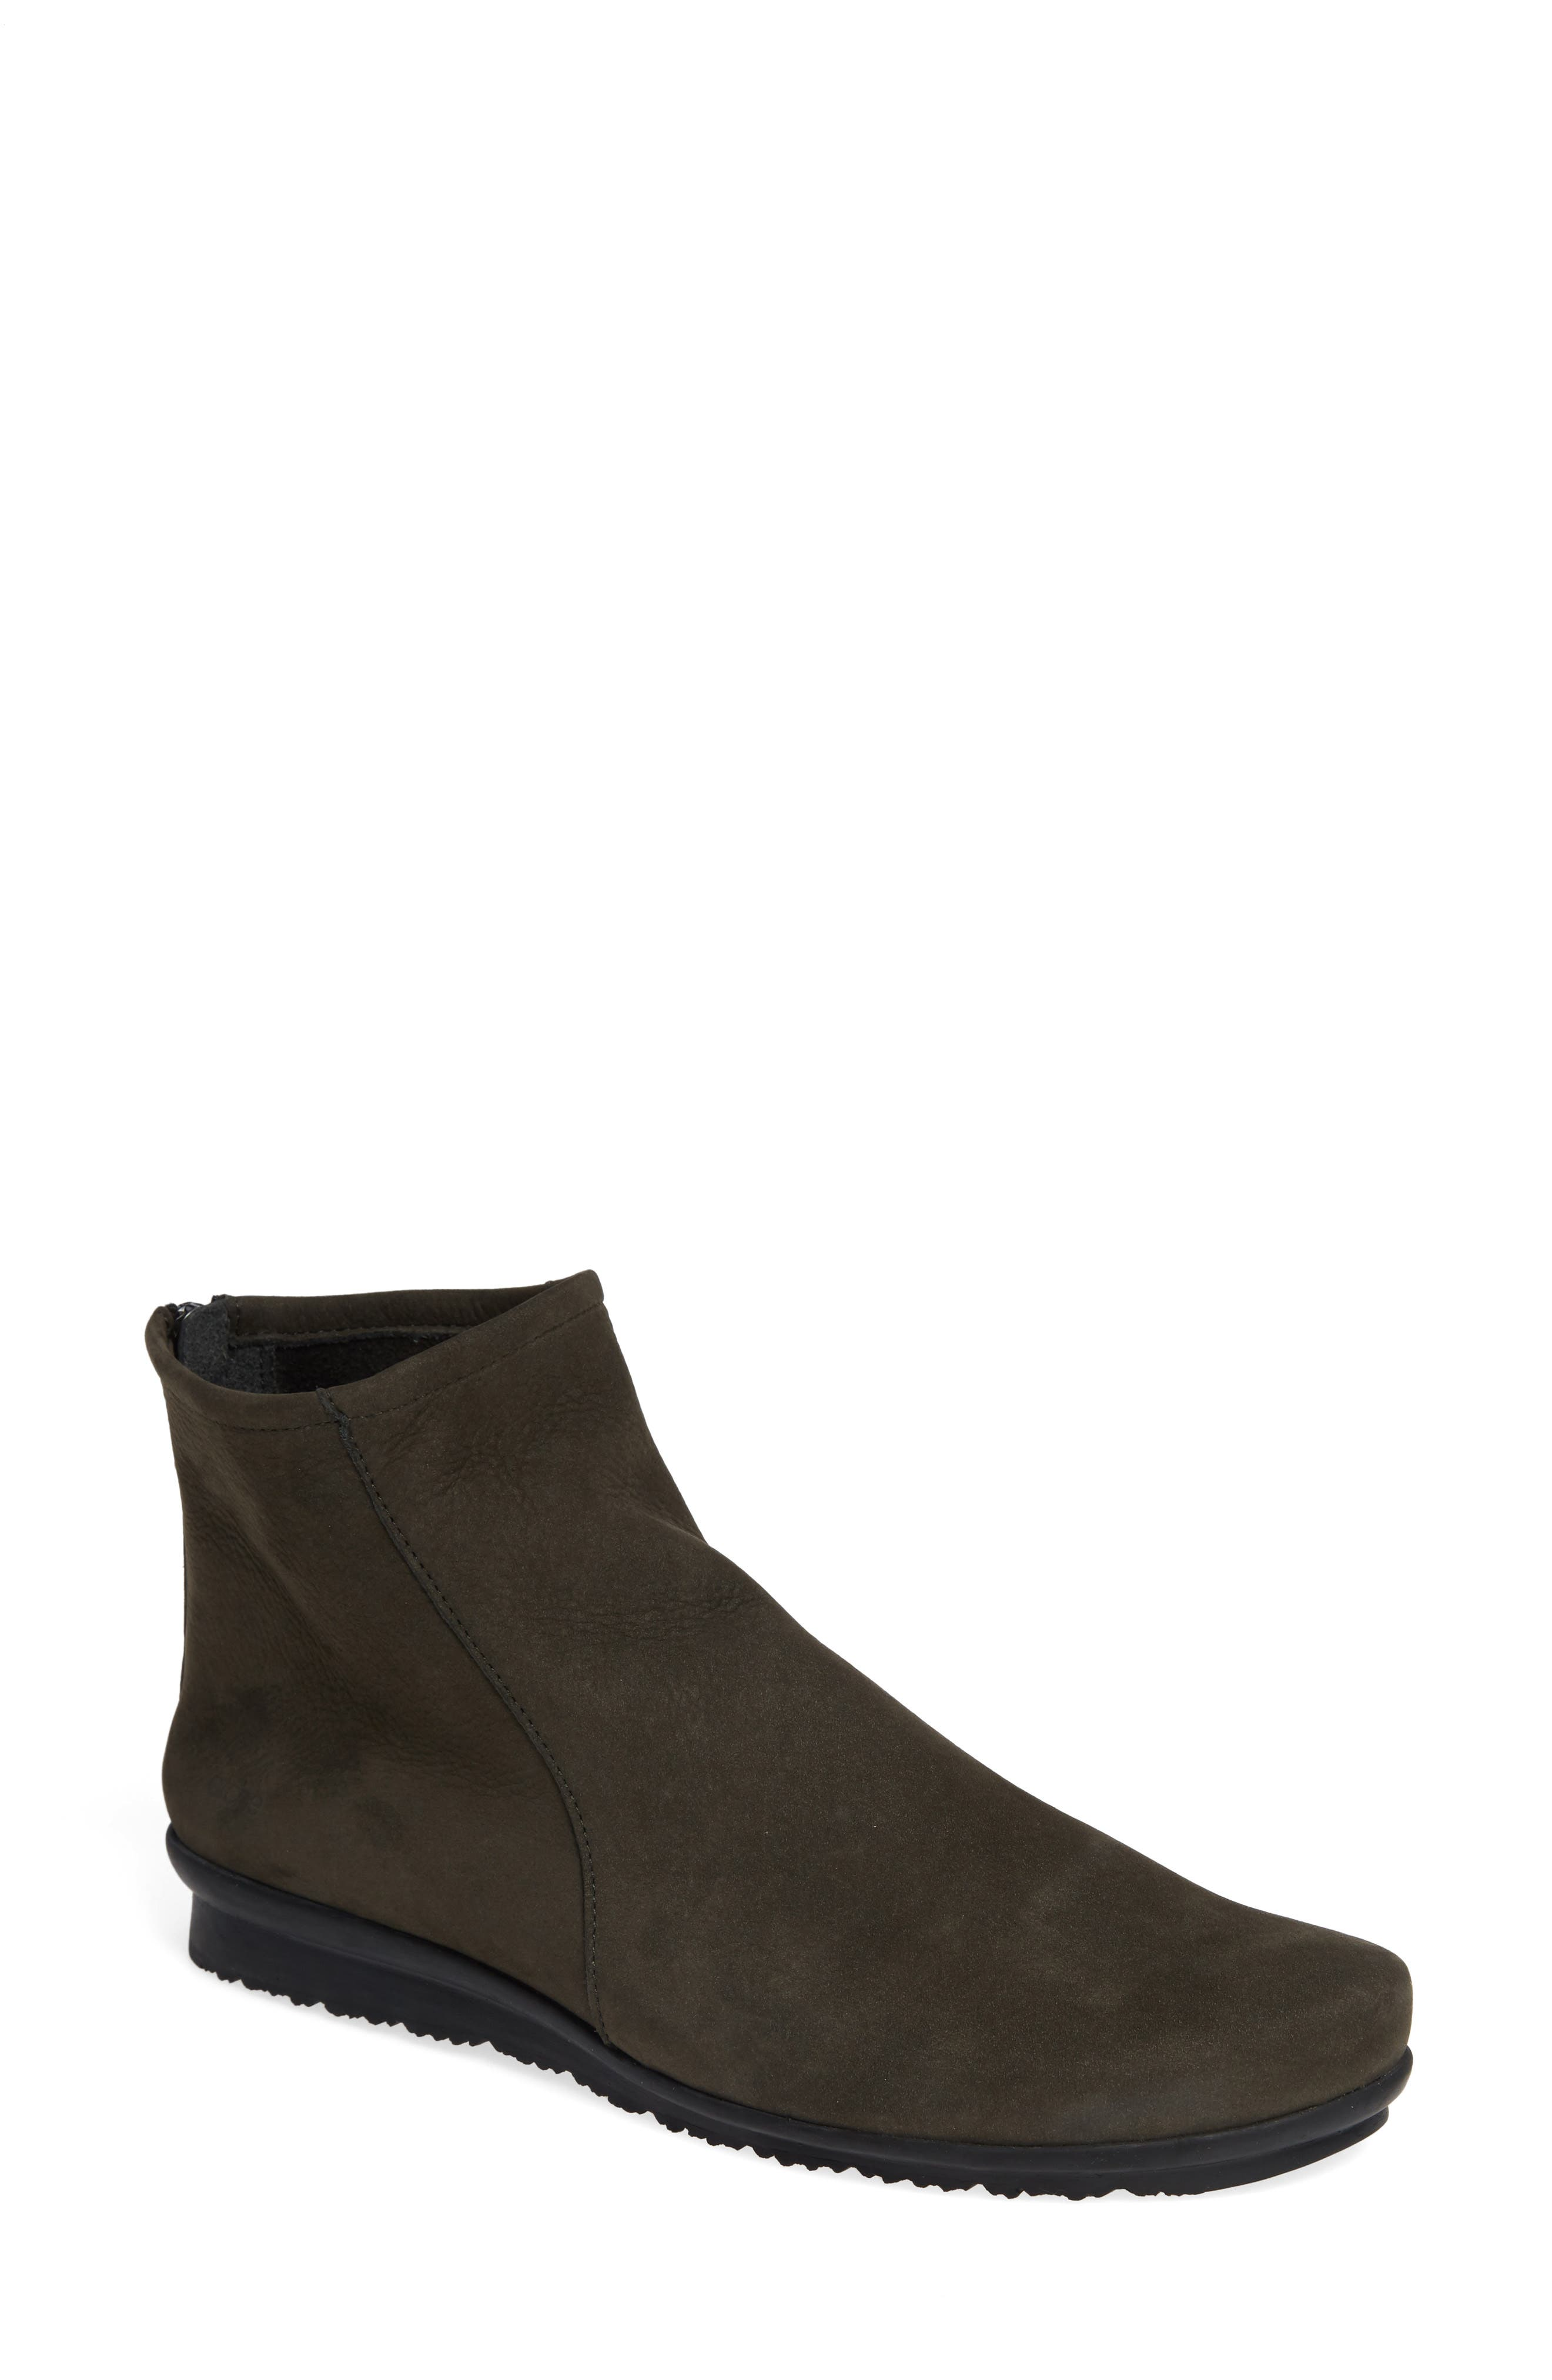 ARCHE 'Baryky' Boot in Castor Fabric